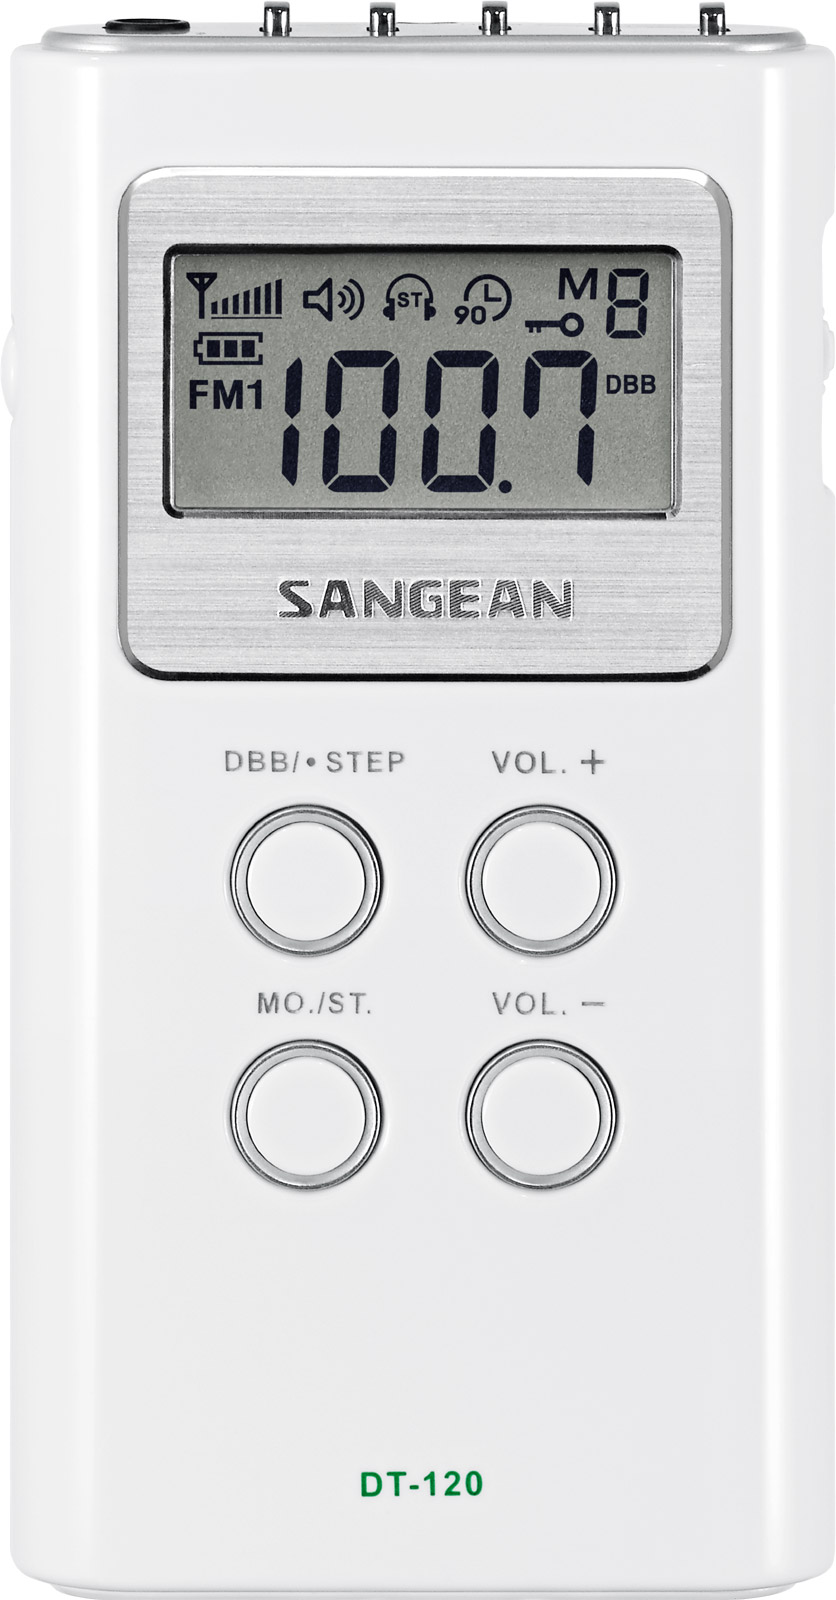 Sangean All in One Compact Digital Tuning Pocket Size Portable AM FM Radio by Sangean